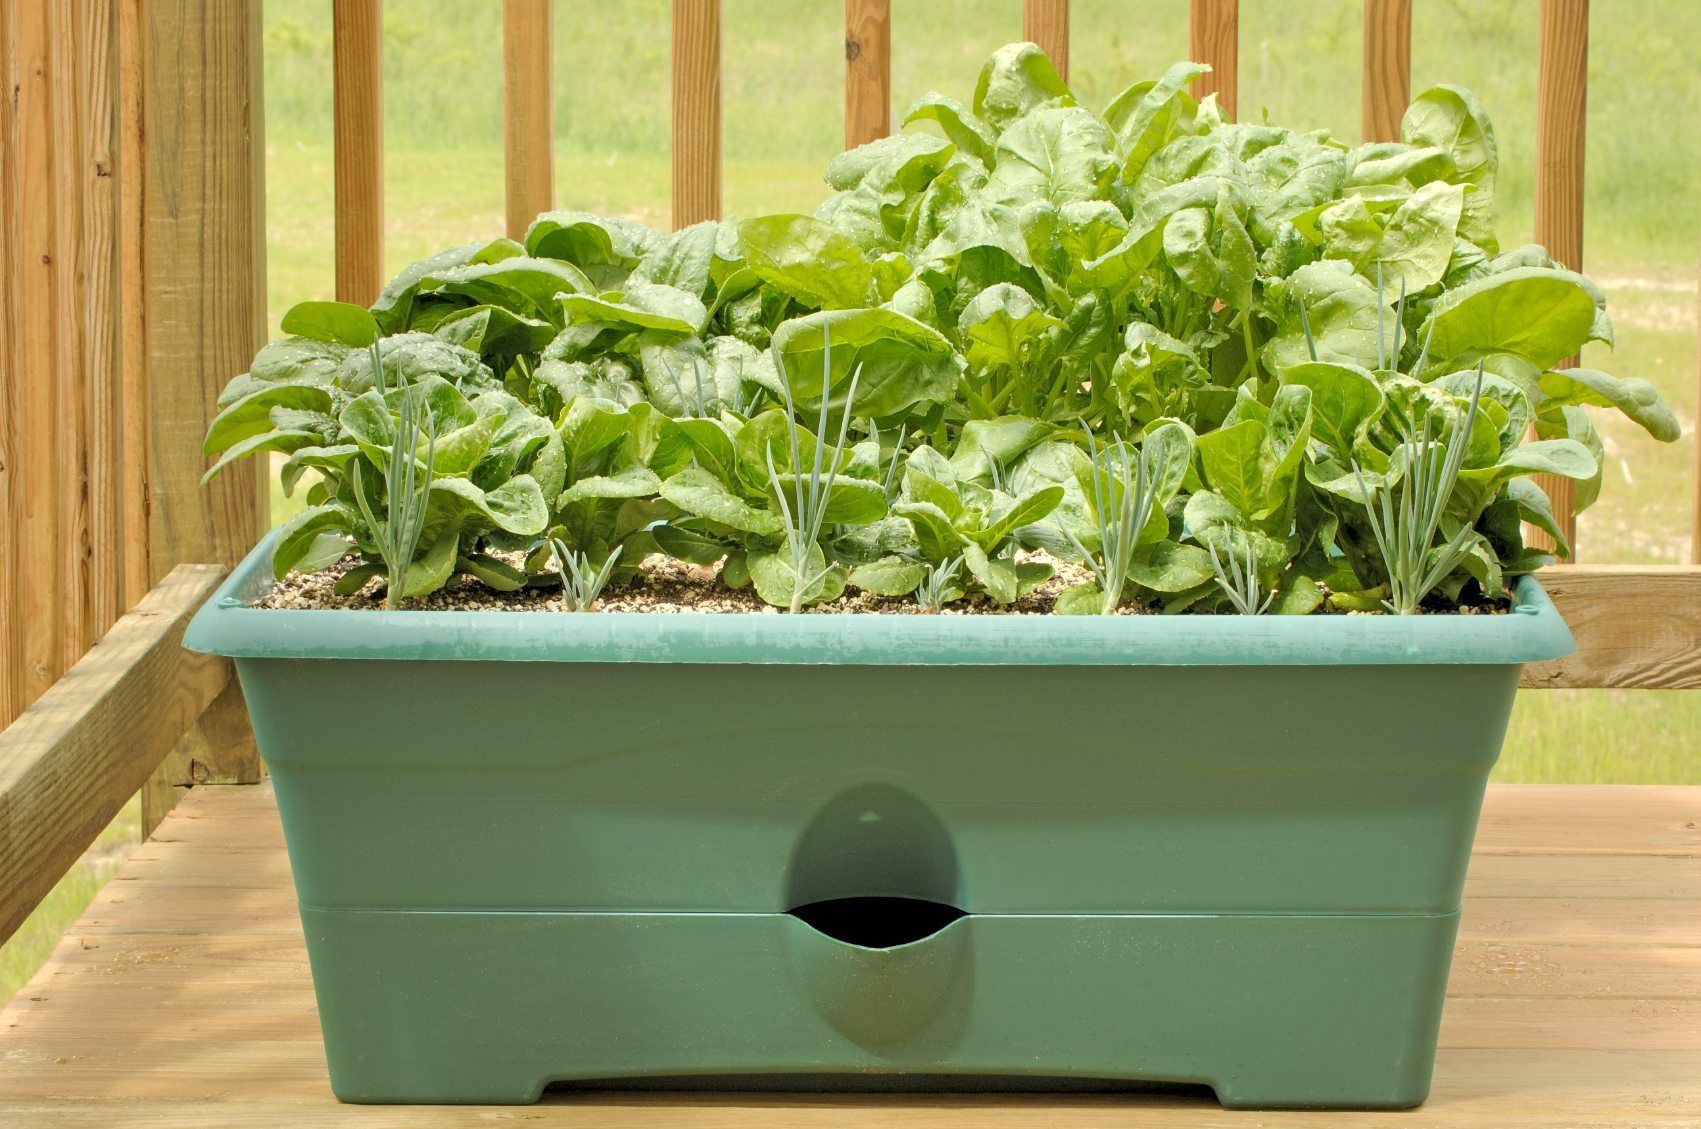 Growing Spinach In A Pot How To Grow Spinach In Containers is part of Fall garden vegetables, Growing spinach, Growing vegetables, Container gardening vegetables, Indoor vegetable gardening, Growing strawberries indoors - Almost anything that grows in a garden can be grown in a container  Growing spinach in containers is an easy crop to start with  Click this article to find out how to grow spinach in containers and the care of spinach in pots